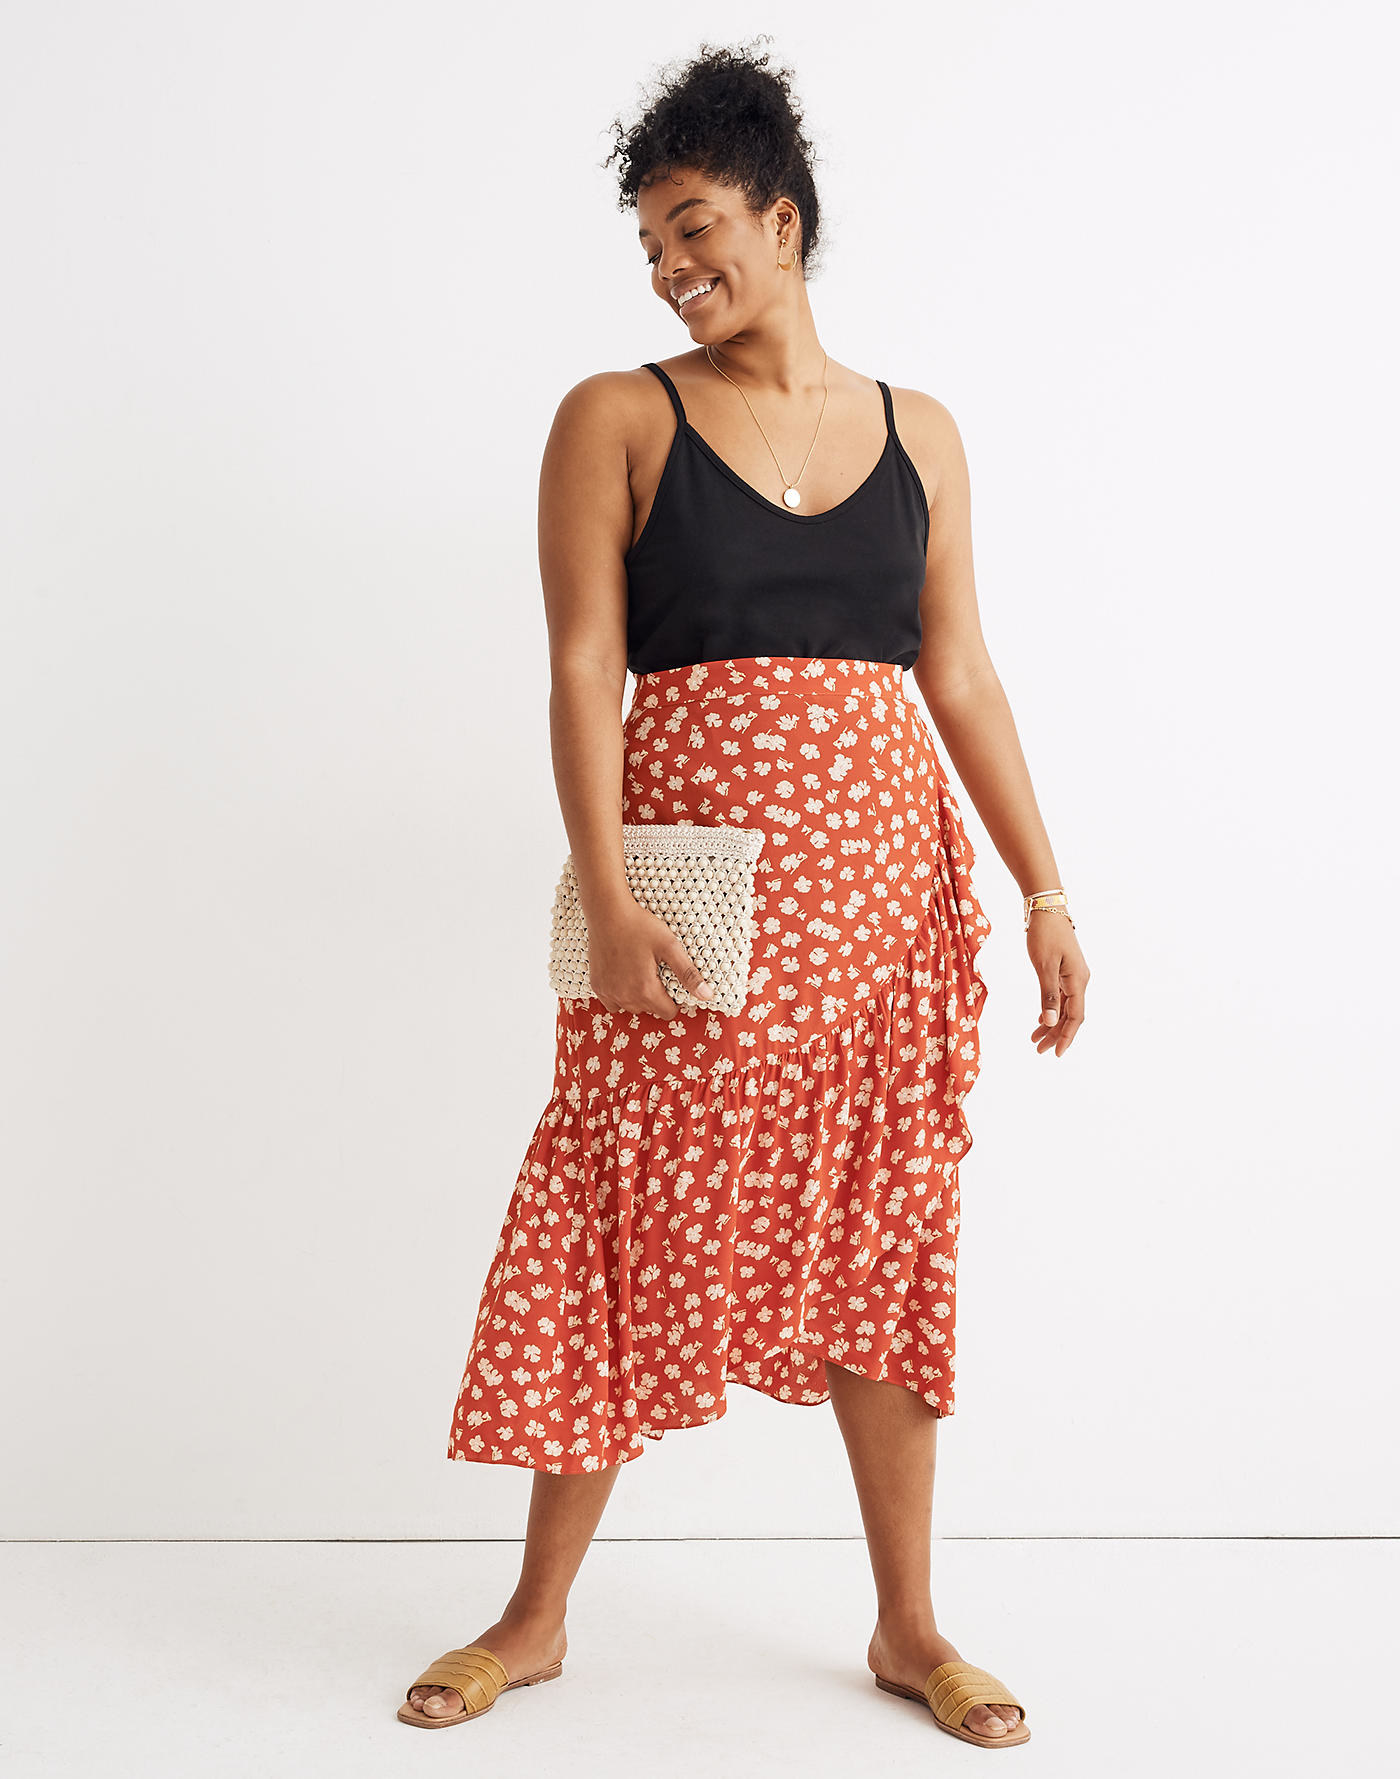 Model wearing the wrap skirt with a wide ruffle across the bottom edge in orange with small white flowers on it